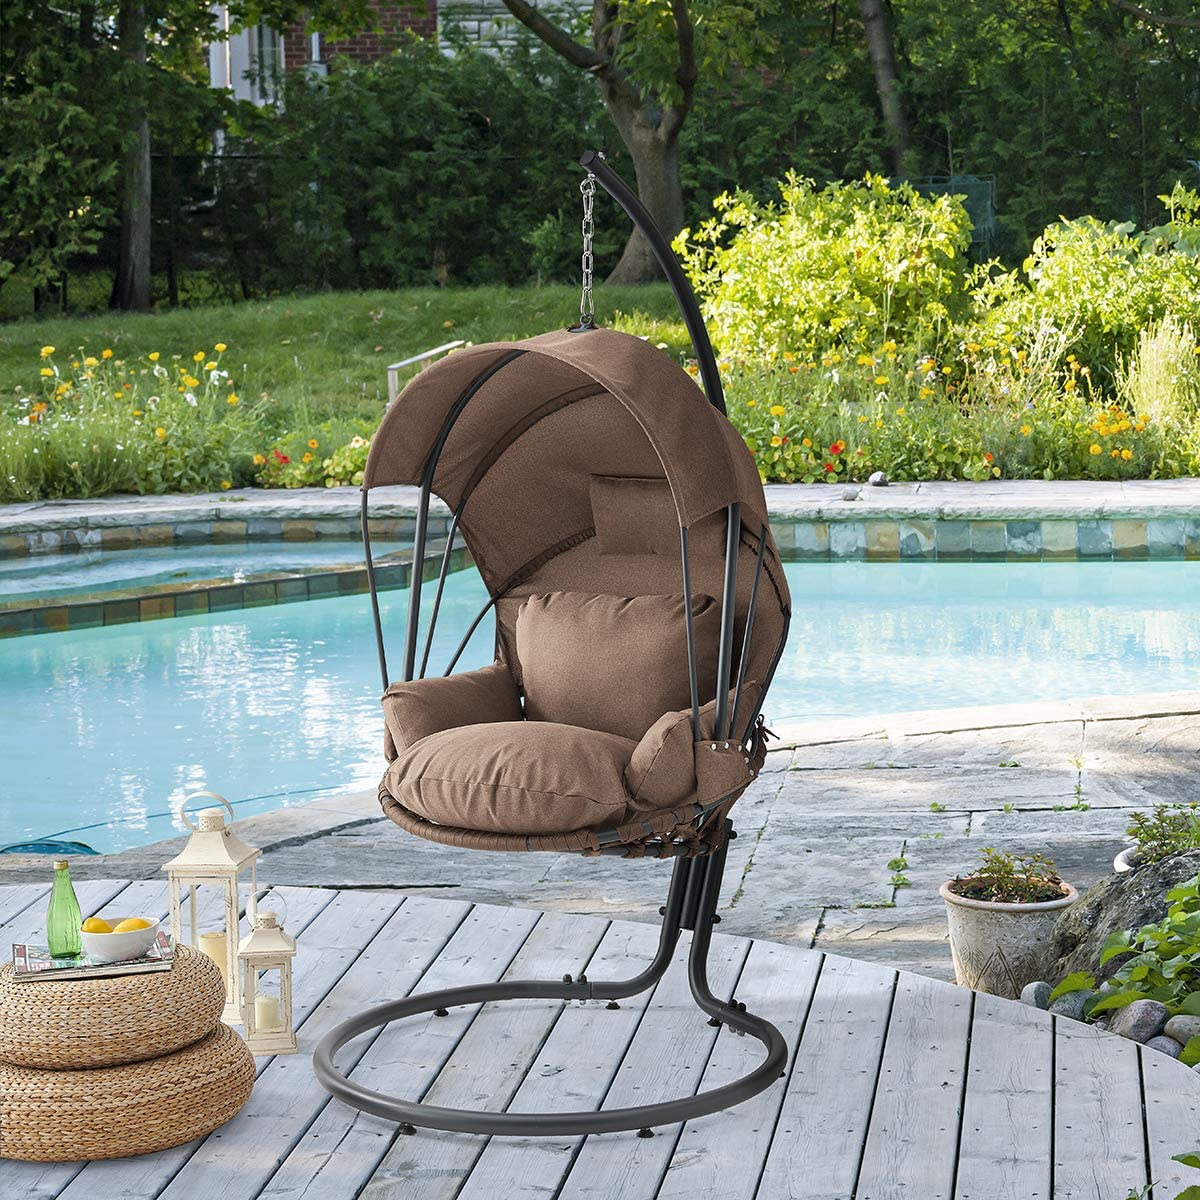 Barton Hanging Egg Chair Swing Chair Cushions with Stand Balcony Pad Garden Porch Lounge Egg Chair with Canopy Sun Shade Cover, Beige